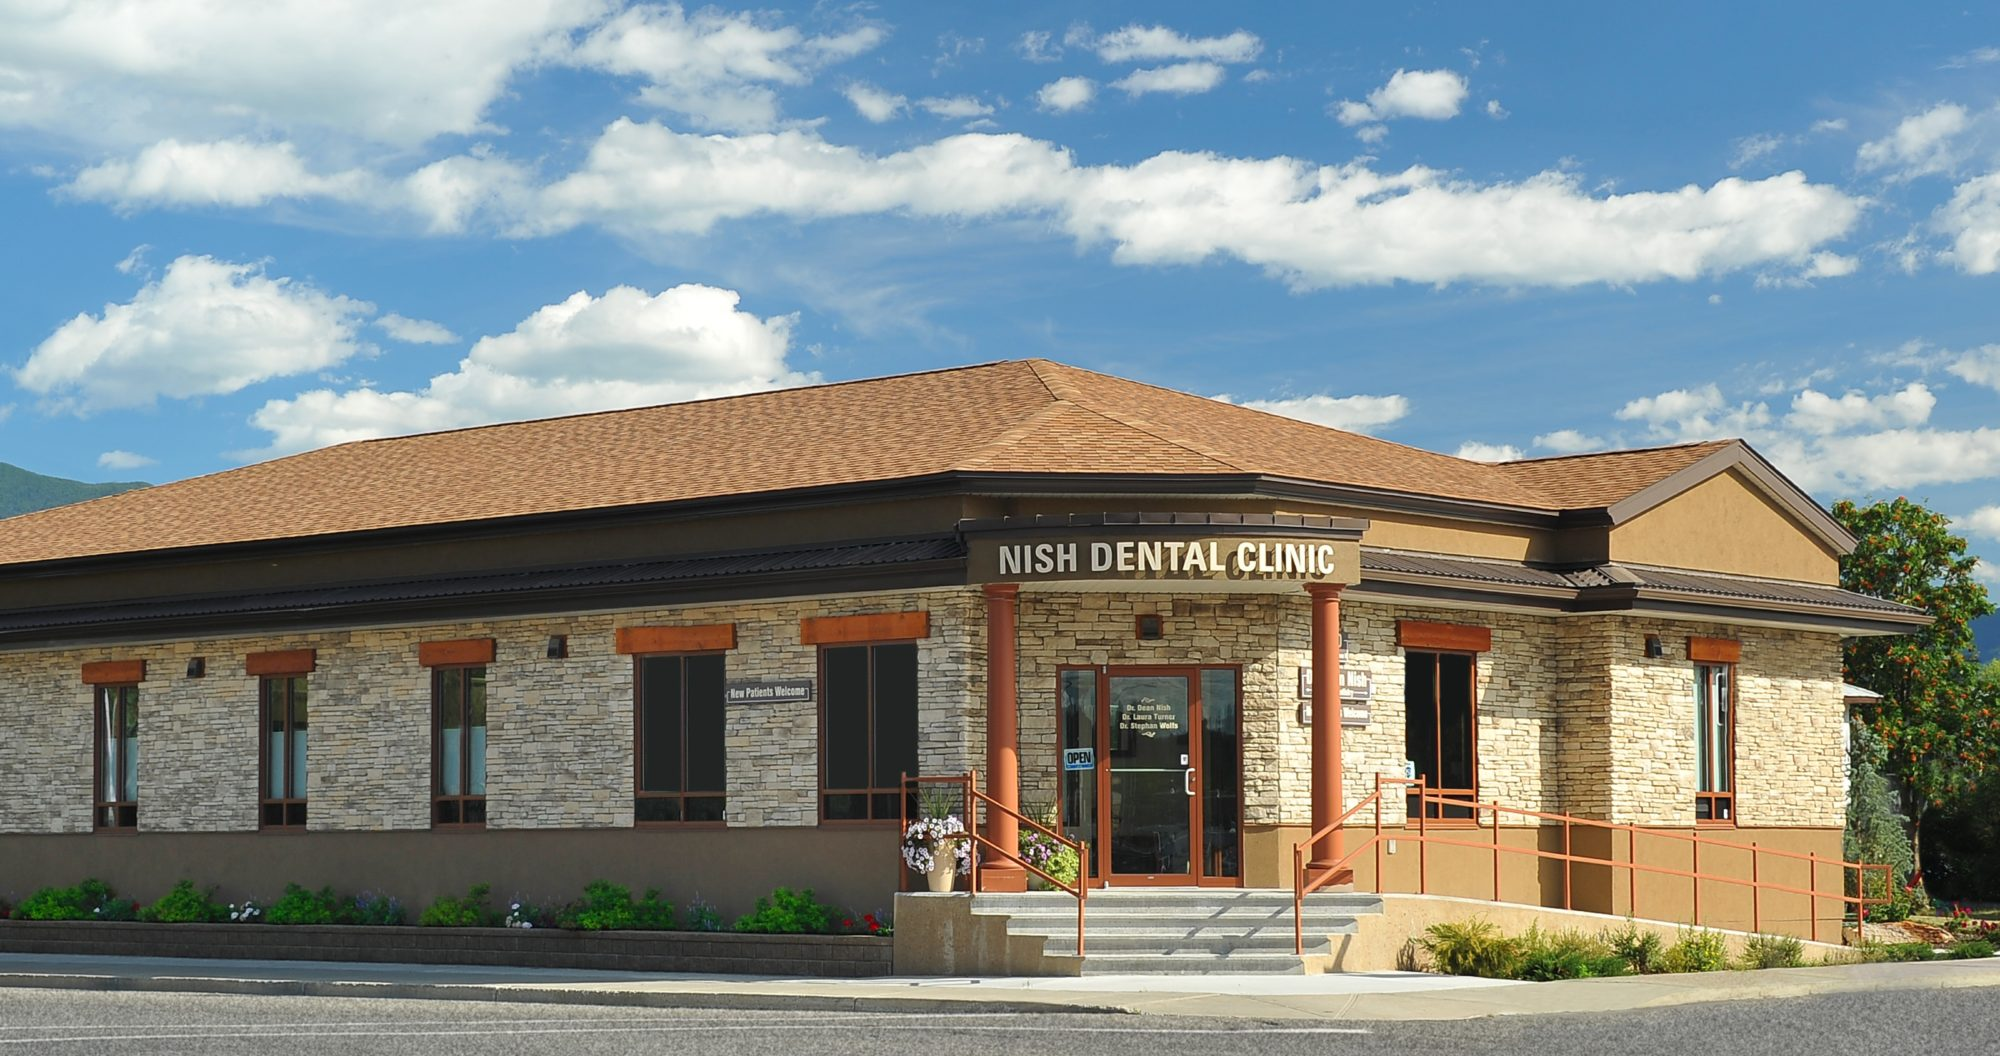 Nish Dental Clinic